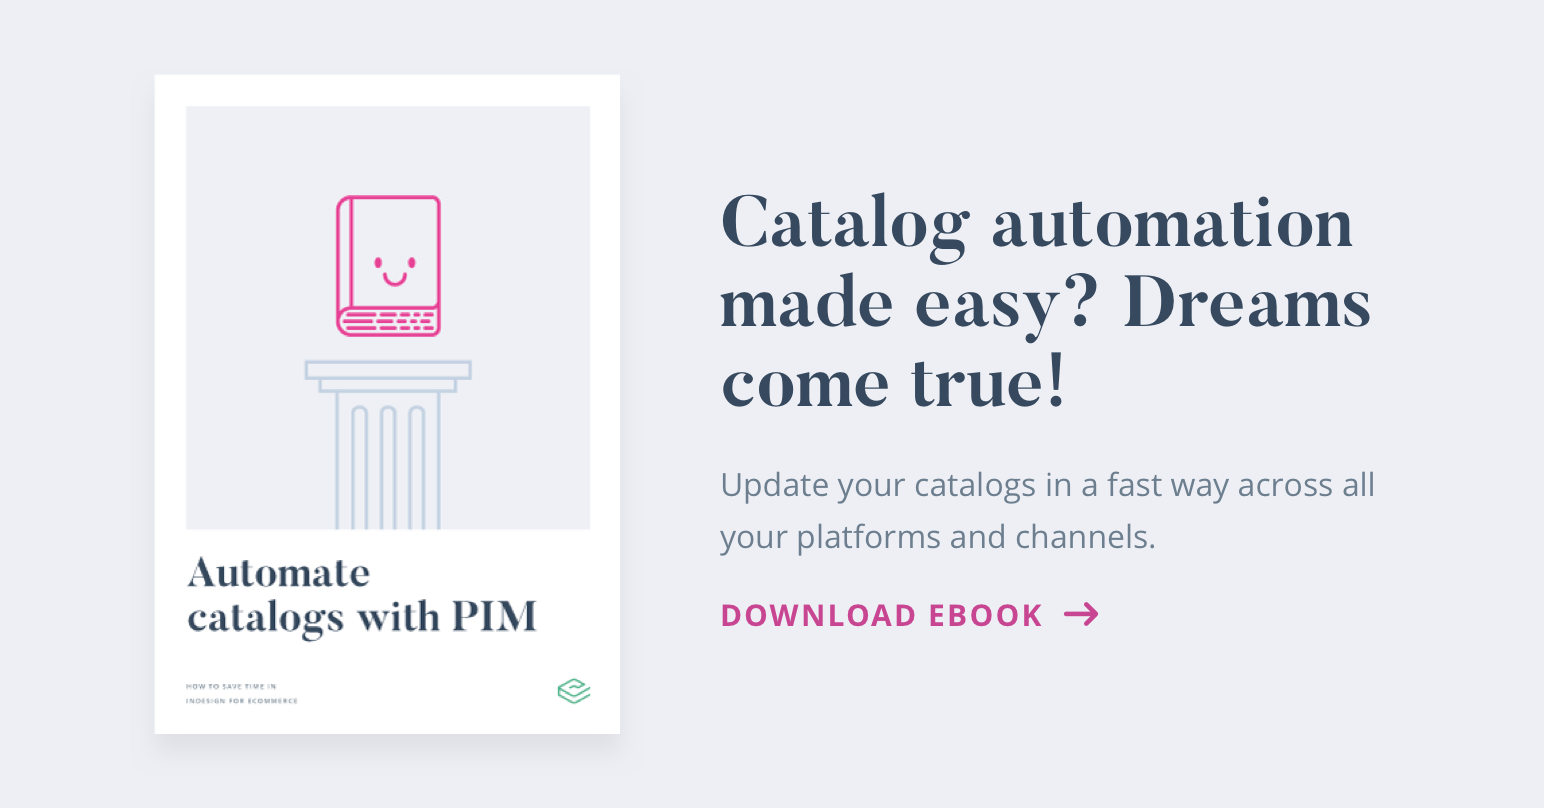 A step-by-step guide to making a product catalog